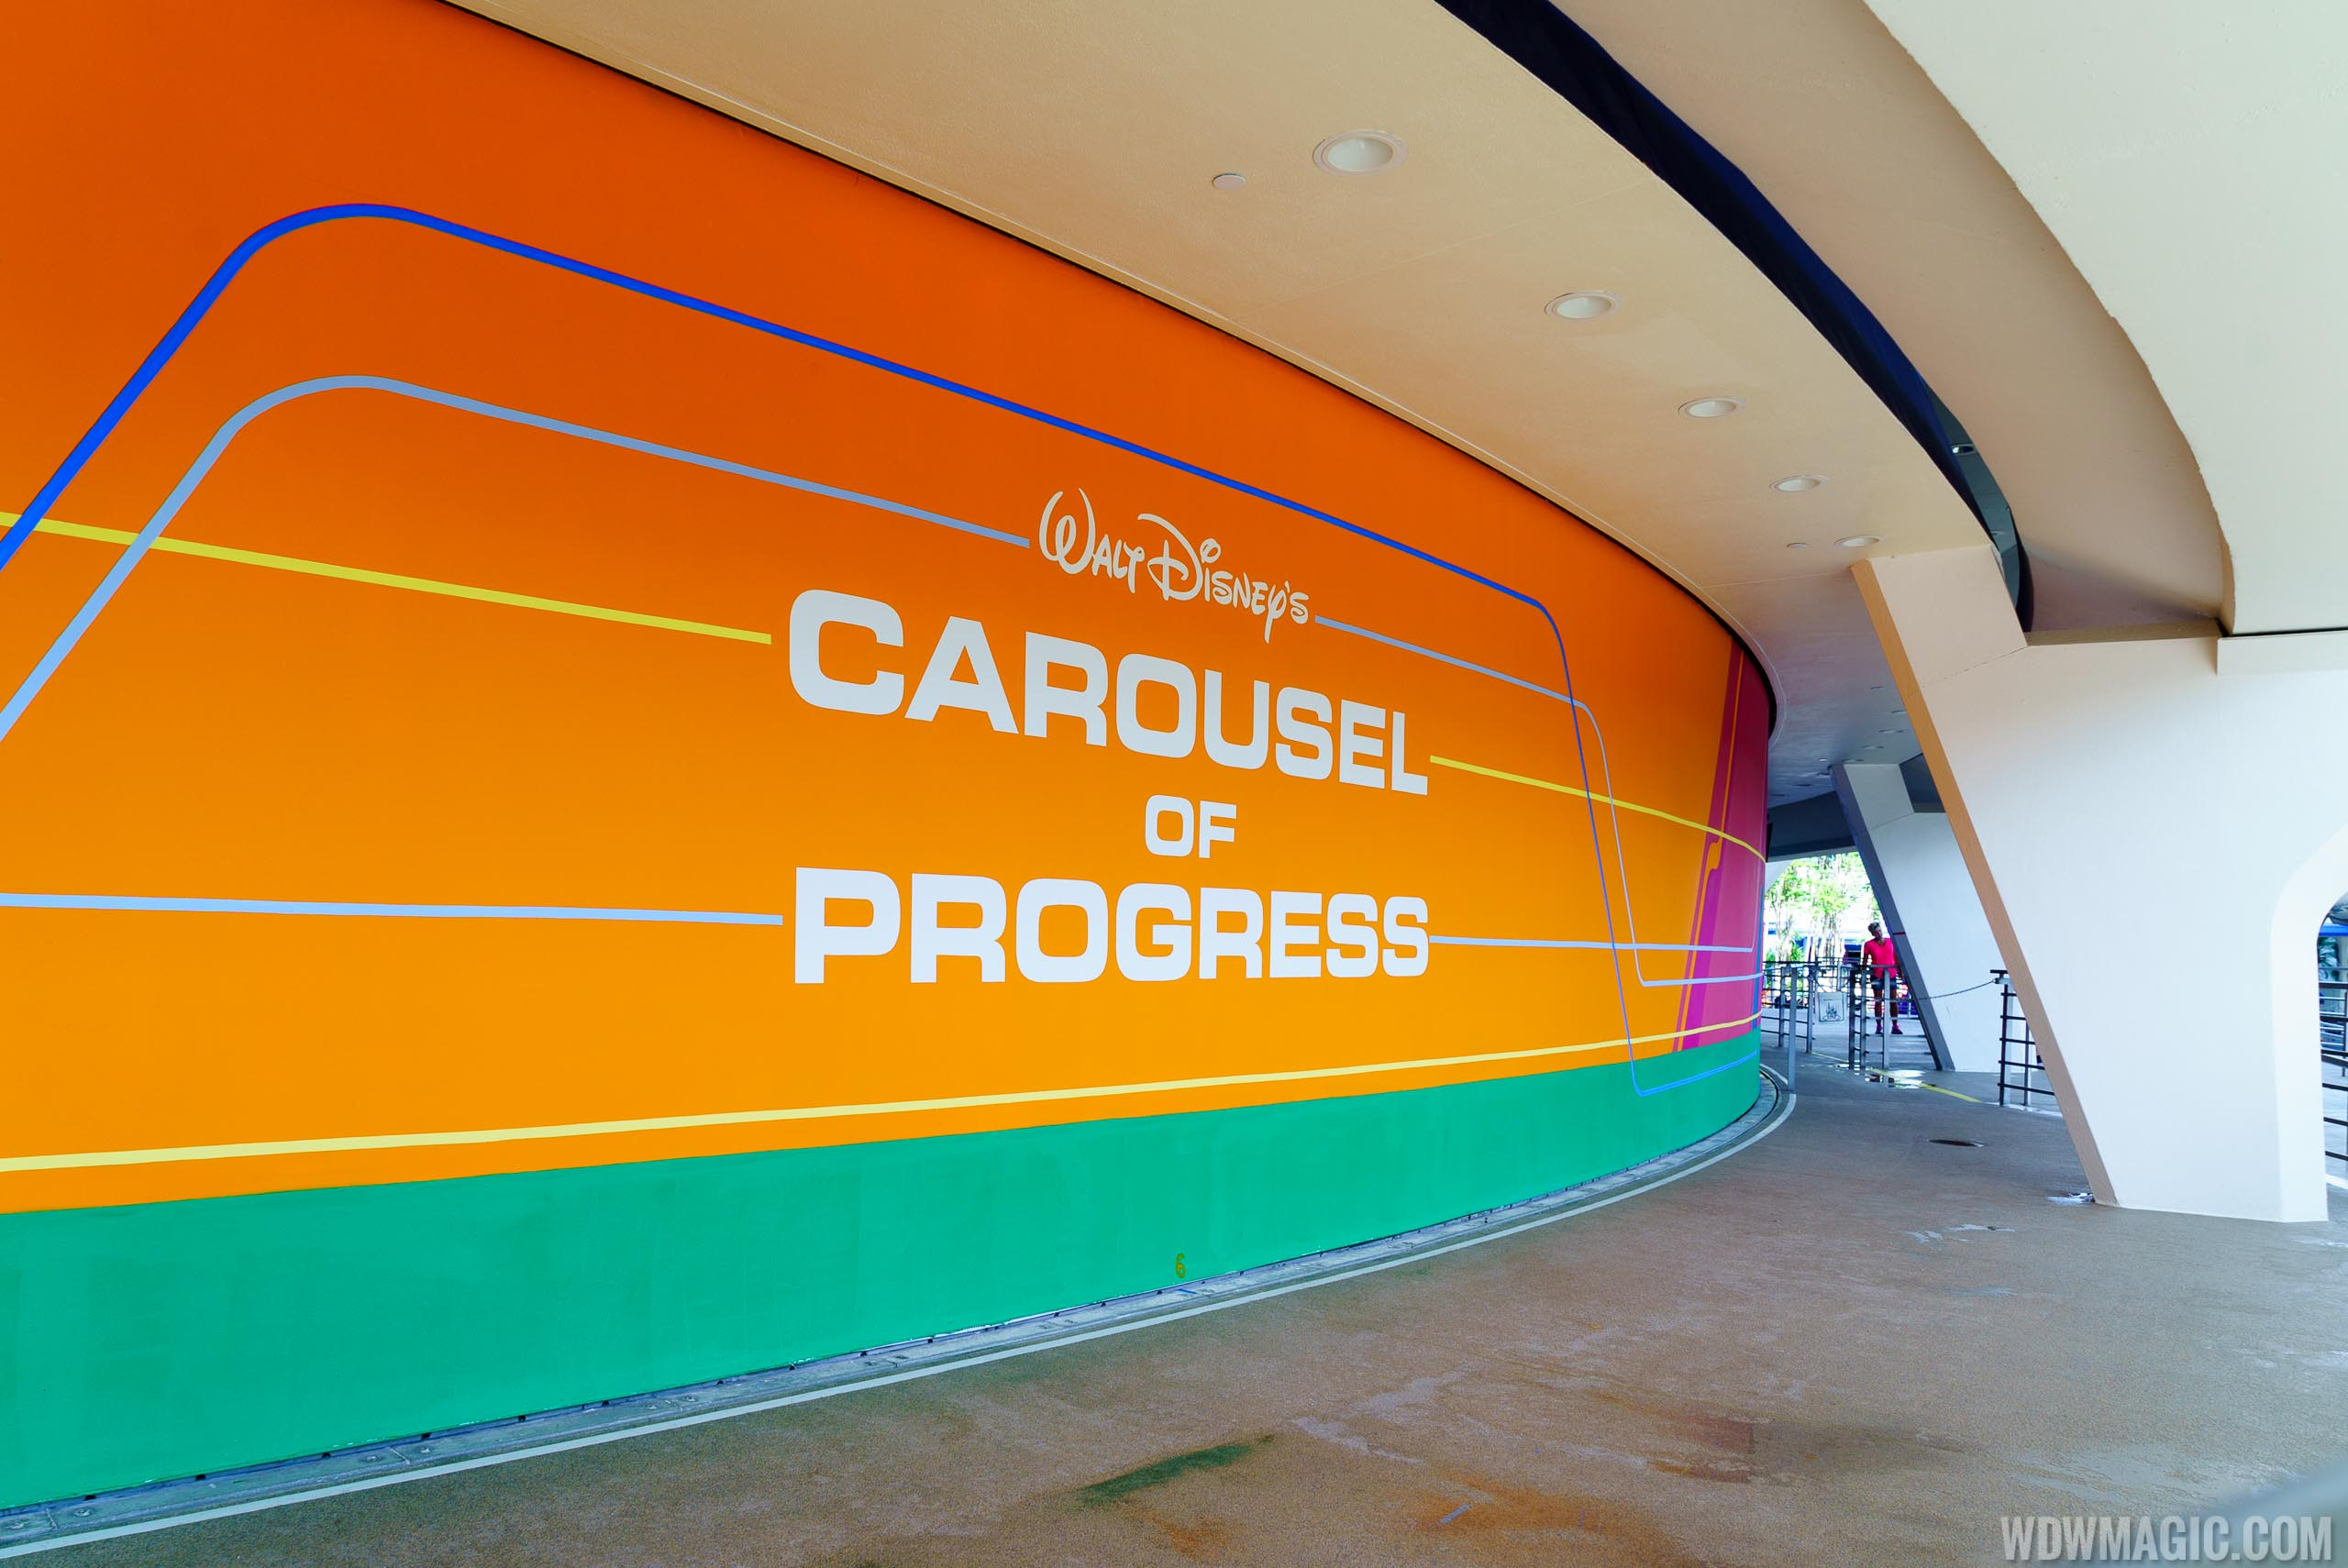 New exterior paint scheme at Carousel of Progress